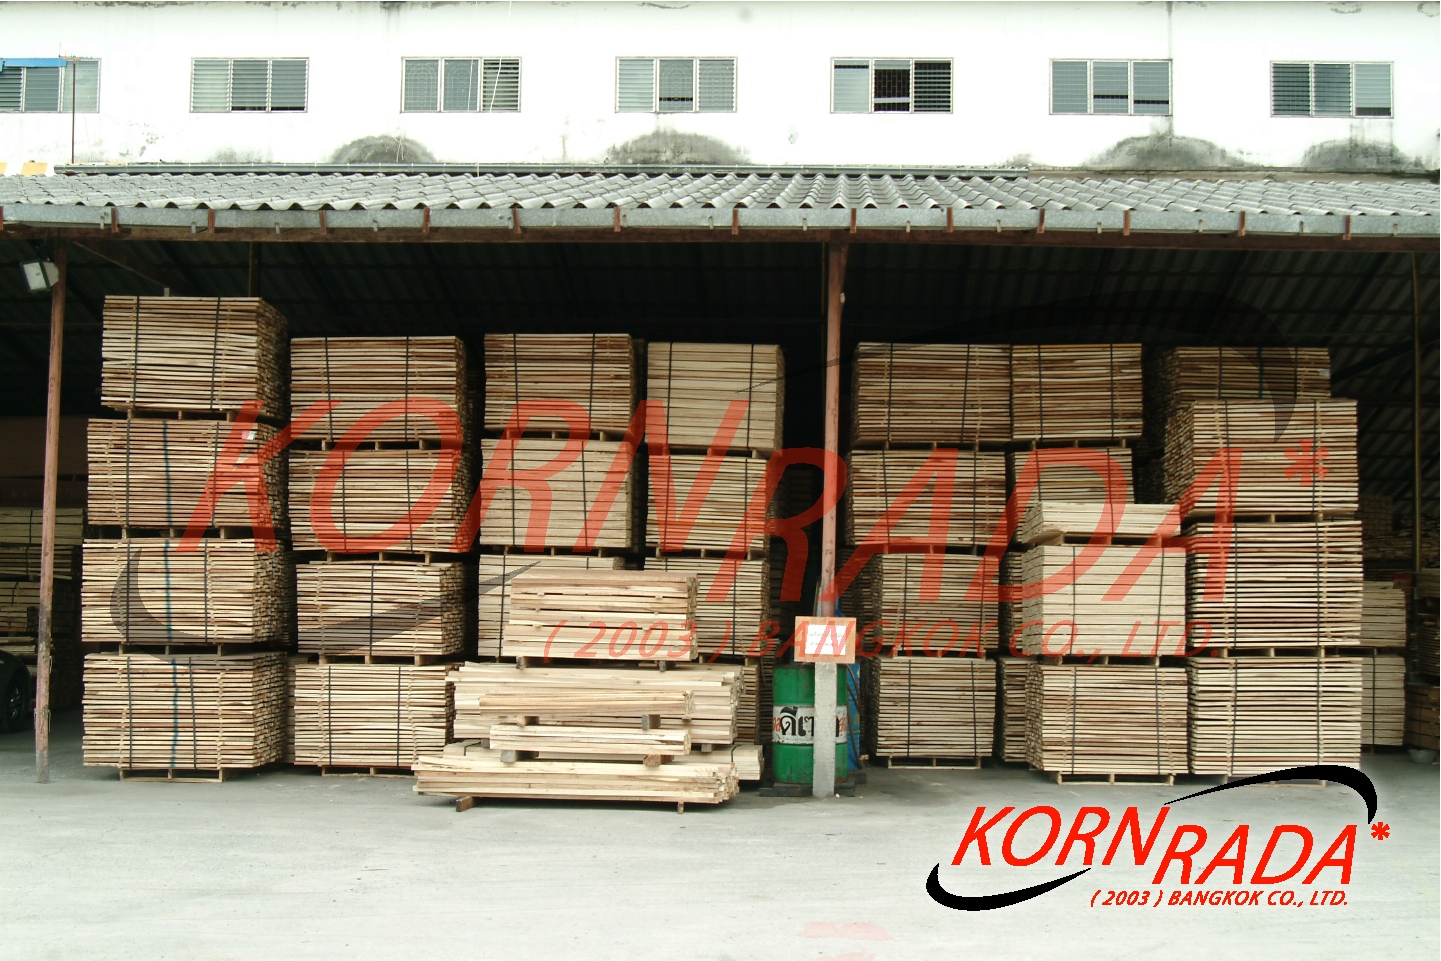 kornrada_products_1393